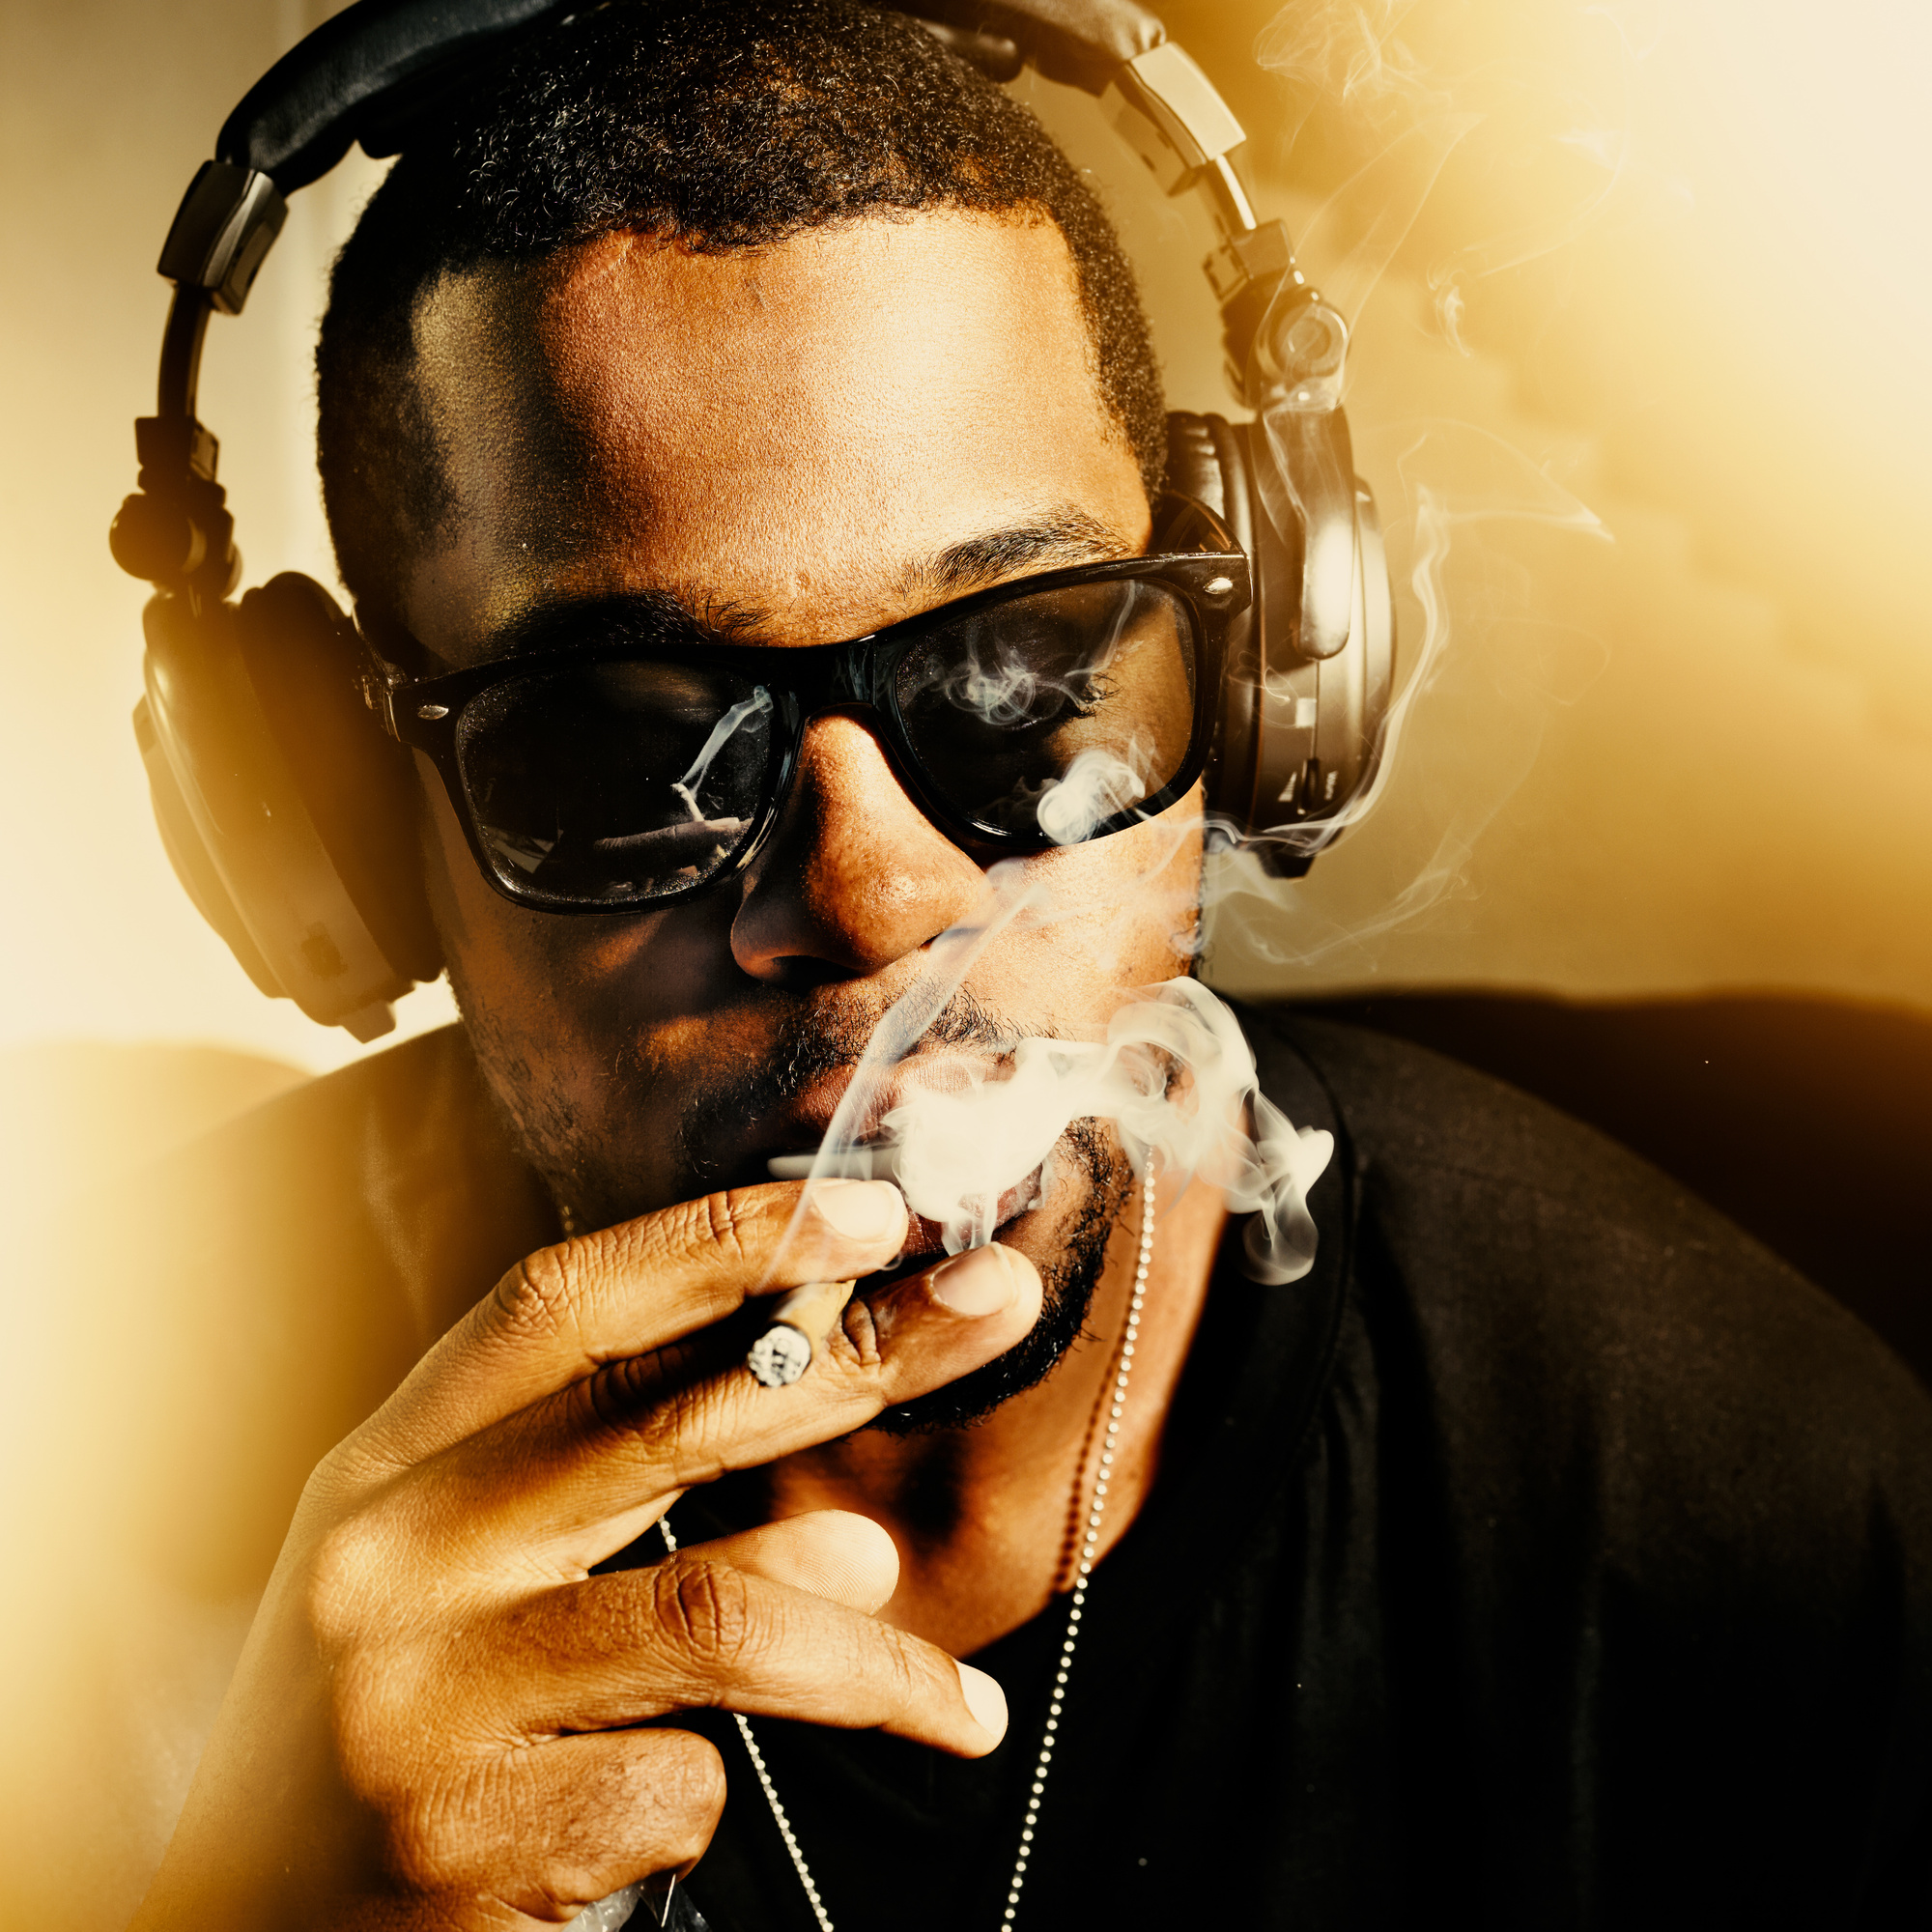 Video Games and Smoking Weed: Why They're a Match Made in Heaven